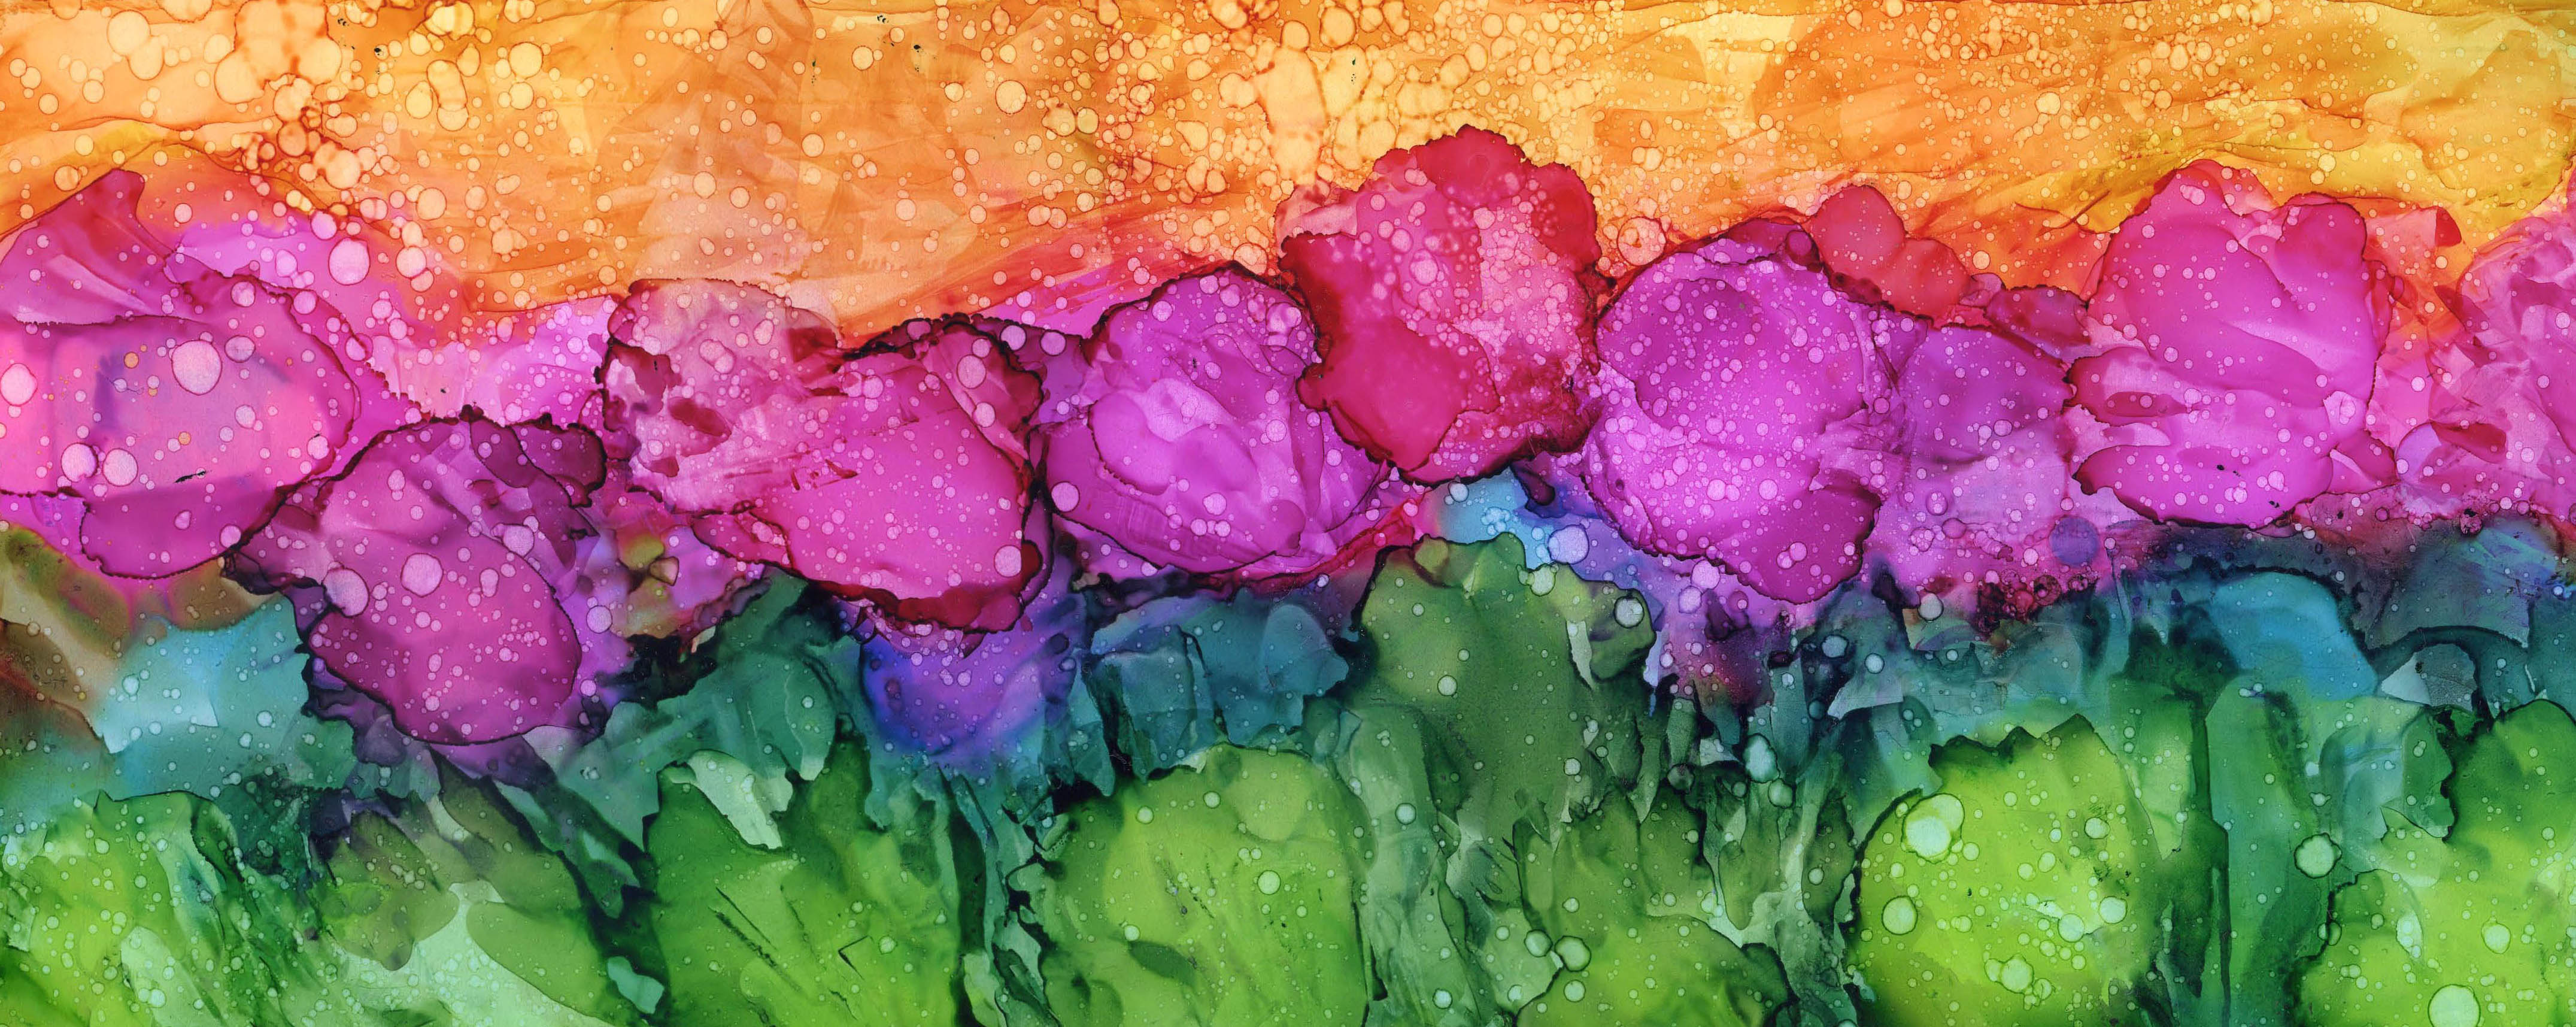 Flowers in May - Alcohol Ink 6 X 15 - Sold - Print Available